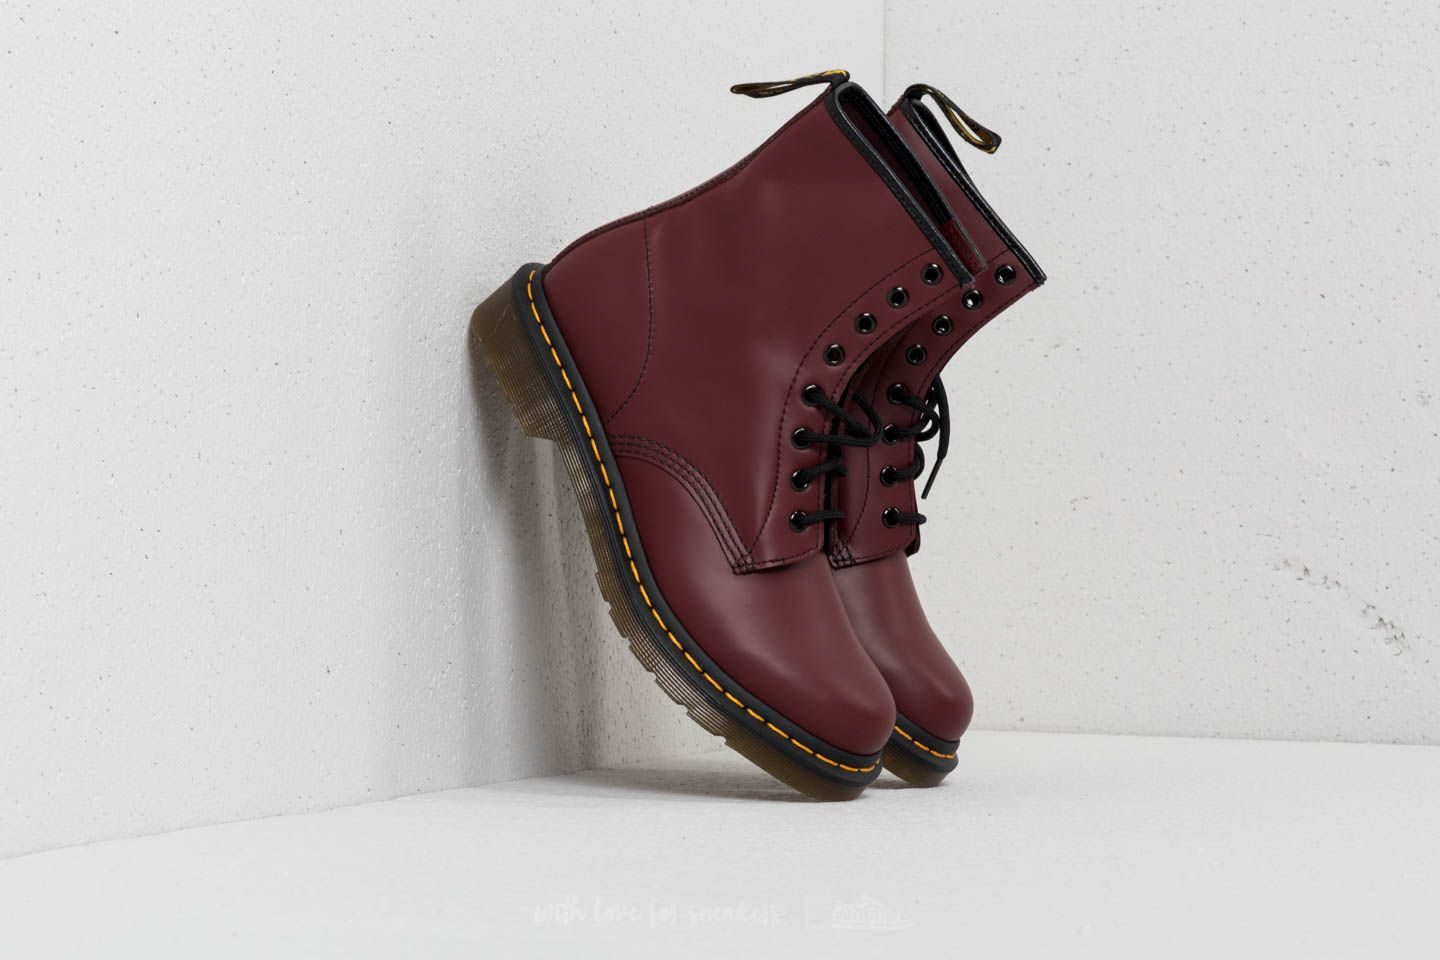 Dr. Martens 1460 W Smooth Cherry Red